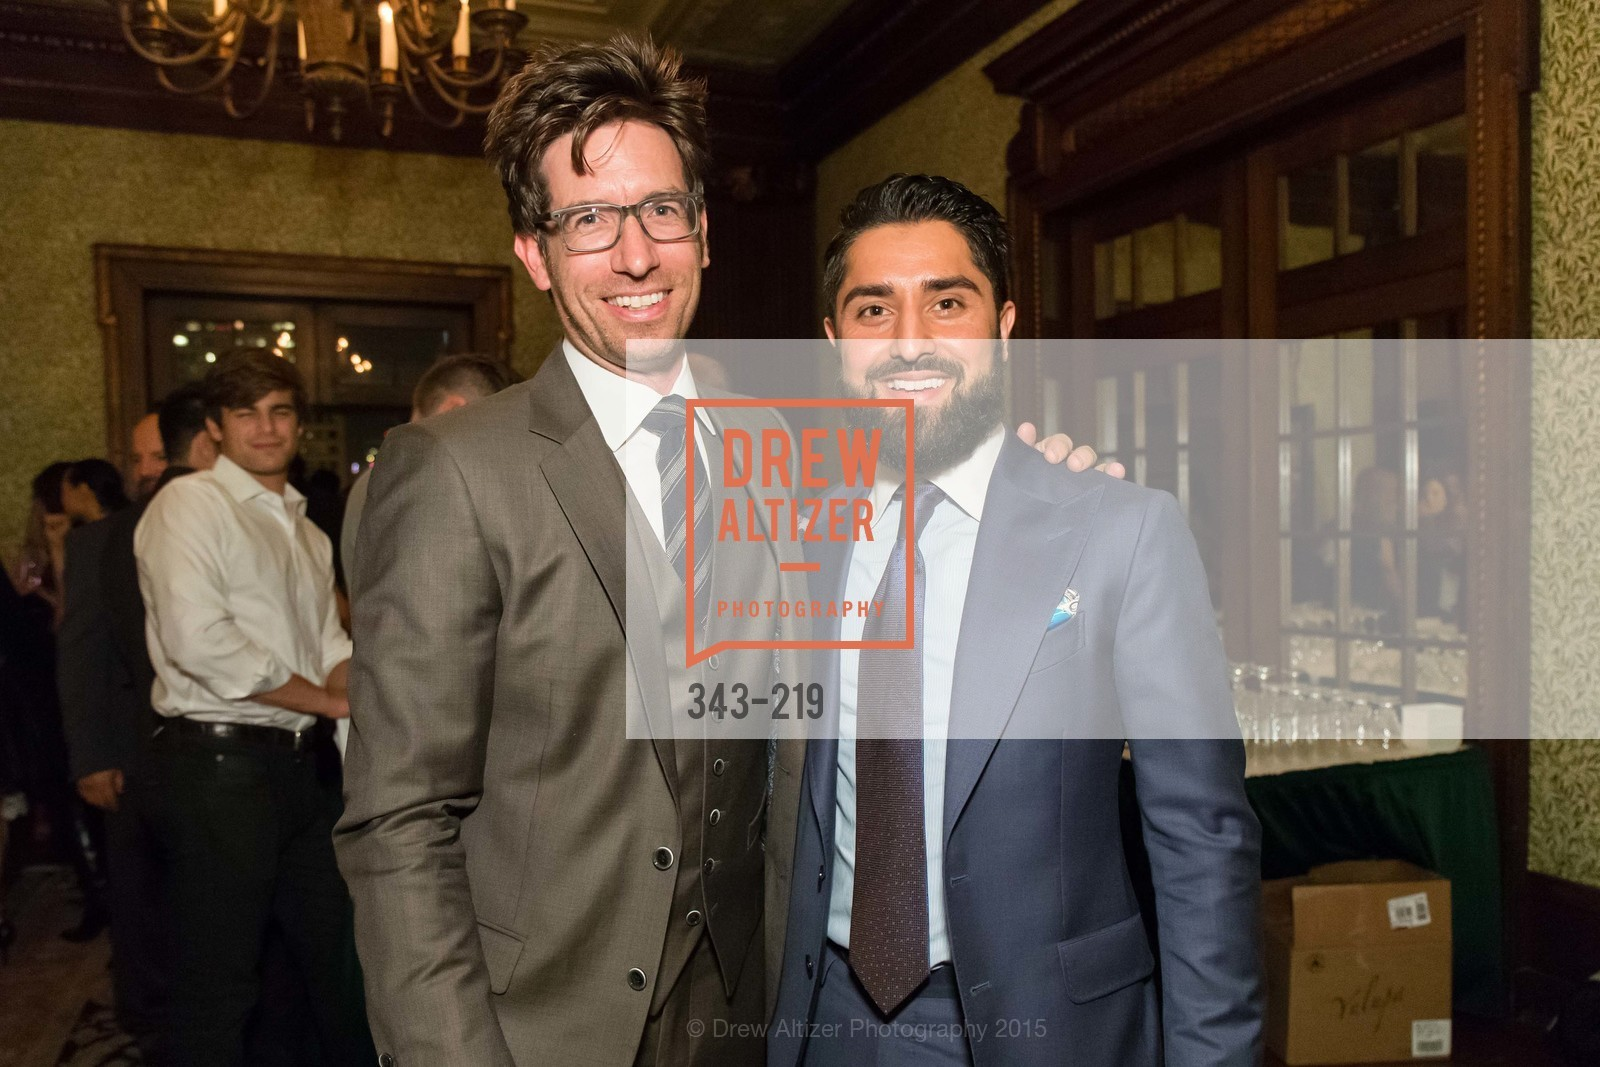 Jeff Schlarb, Roh Habibi, Champagne Reception & Screening of Million Dollar Listing San Francisco, University Club. 800 Powell St, August 5th, 2015,Drew Altizer, Drew Altizer Photography, full-service event agency, private events, San Francisco photographer, photographer California